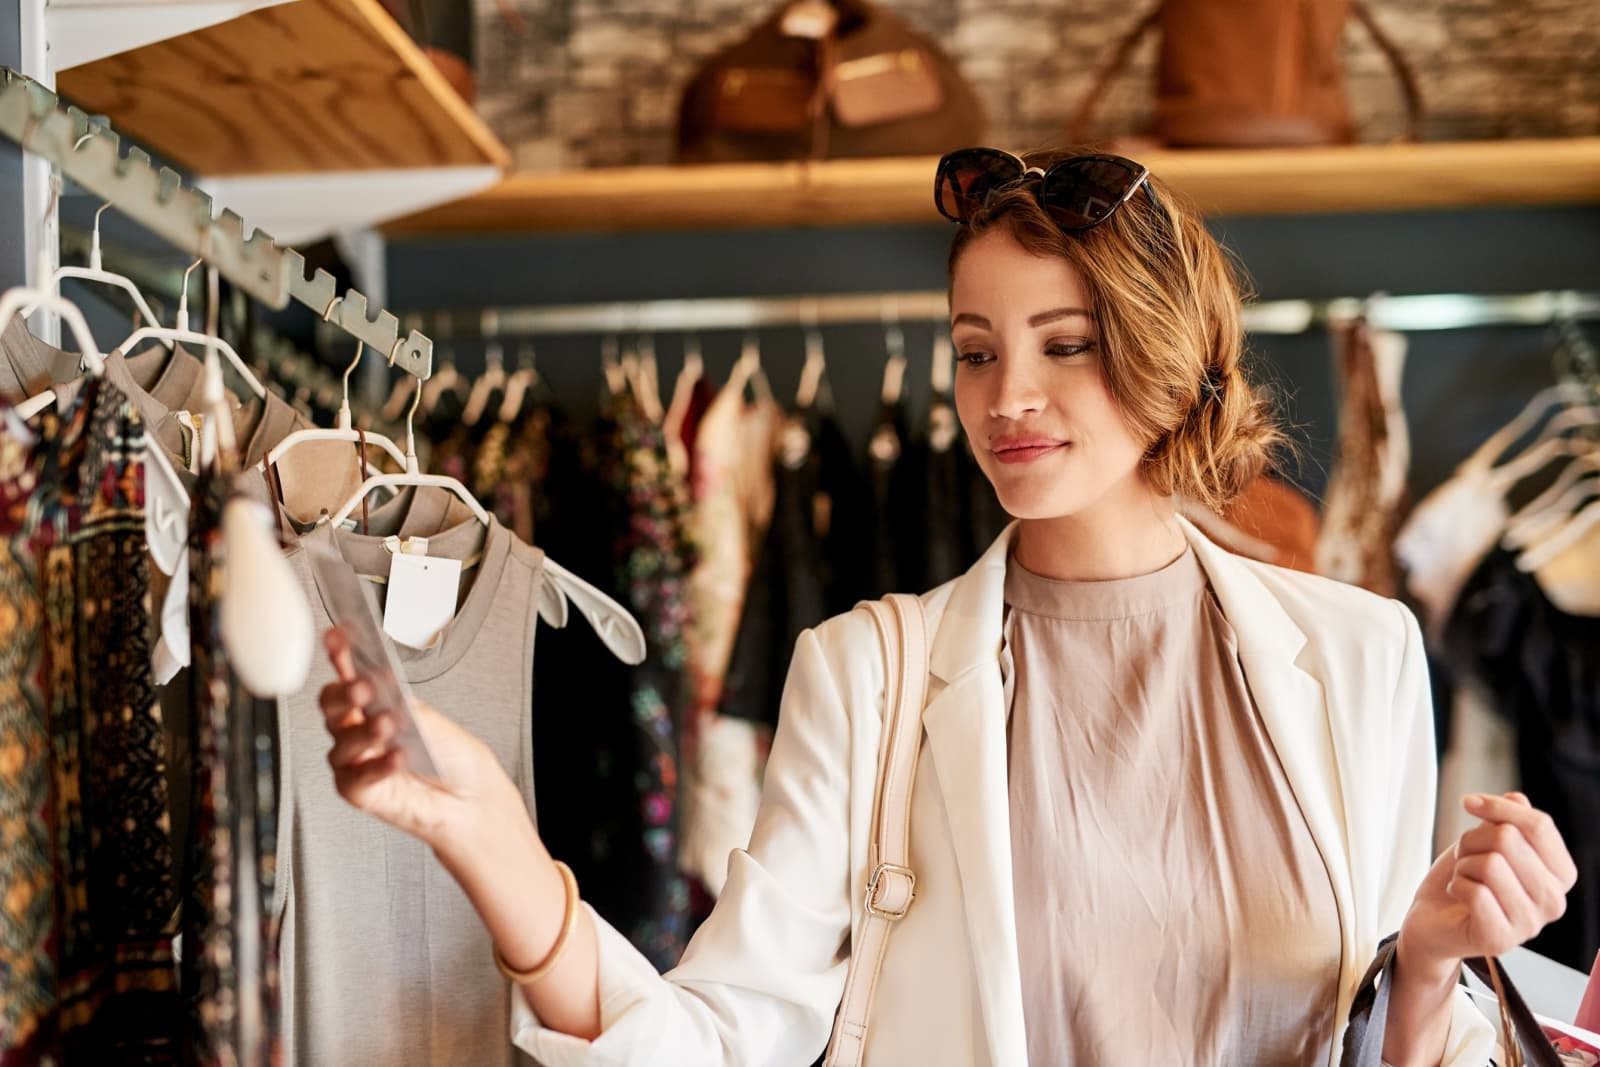 photo showing a woman happily shopping for new clothes